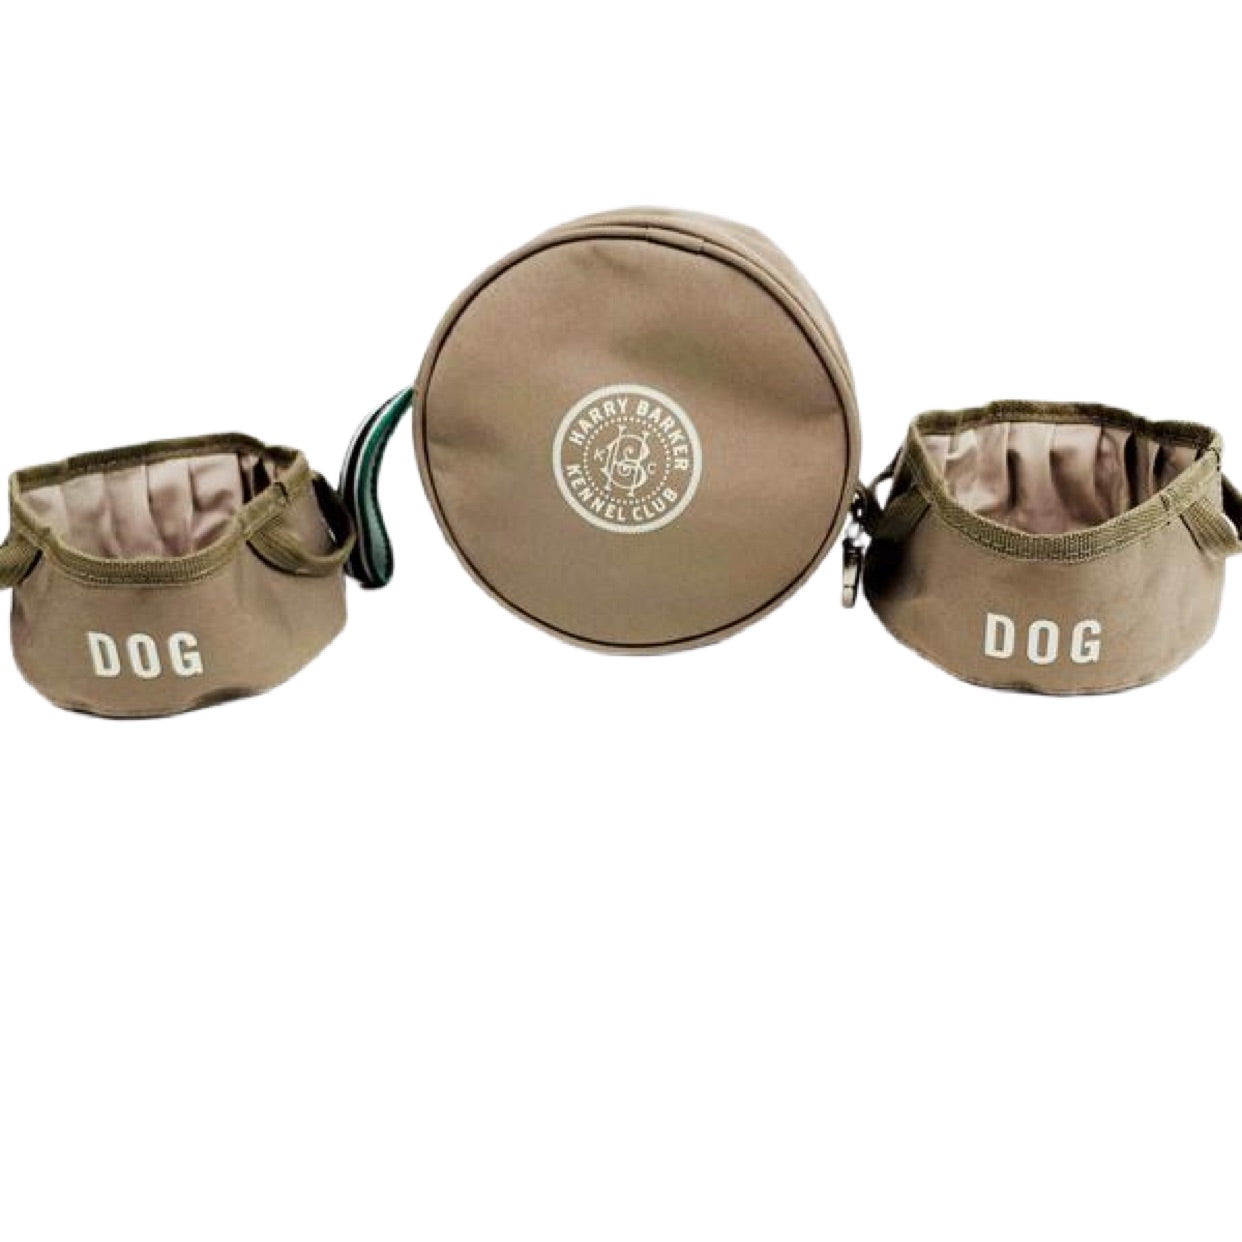 Kennel Club Fold-Up Bowls & Pouch Set